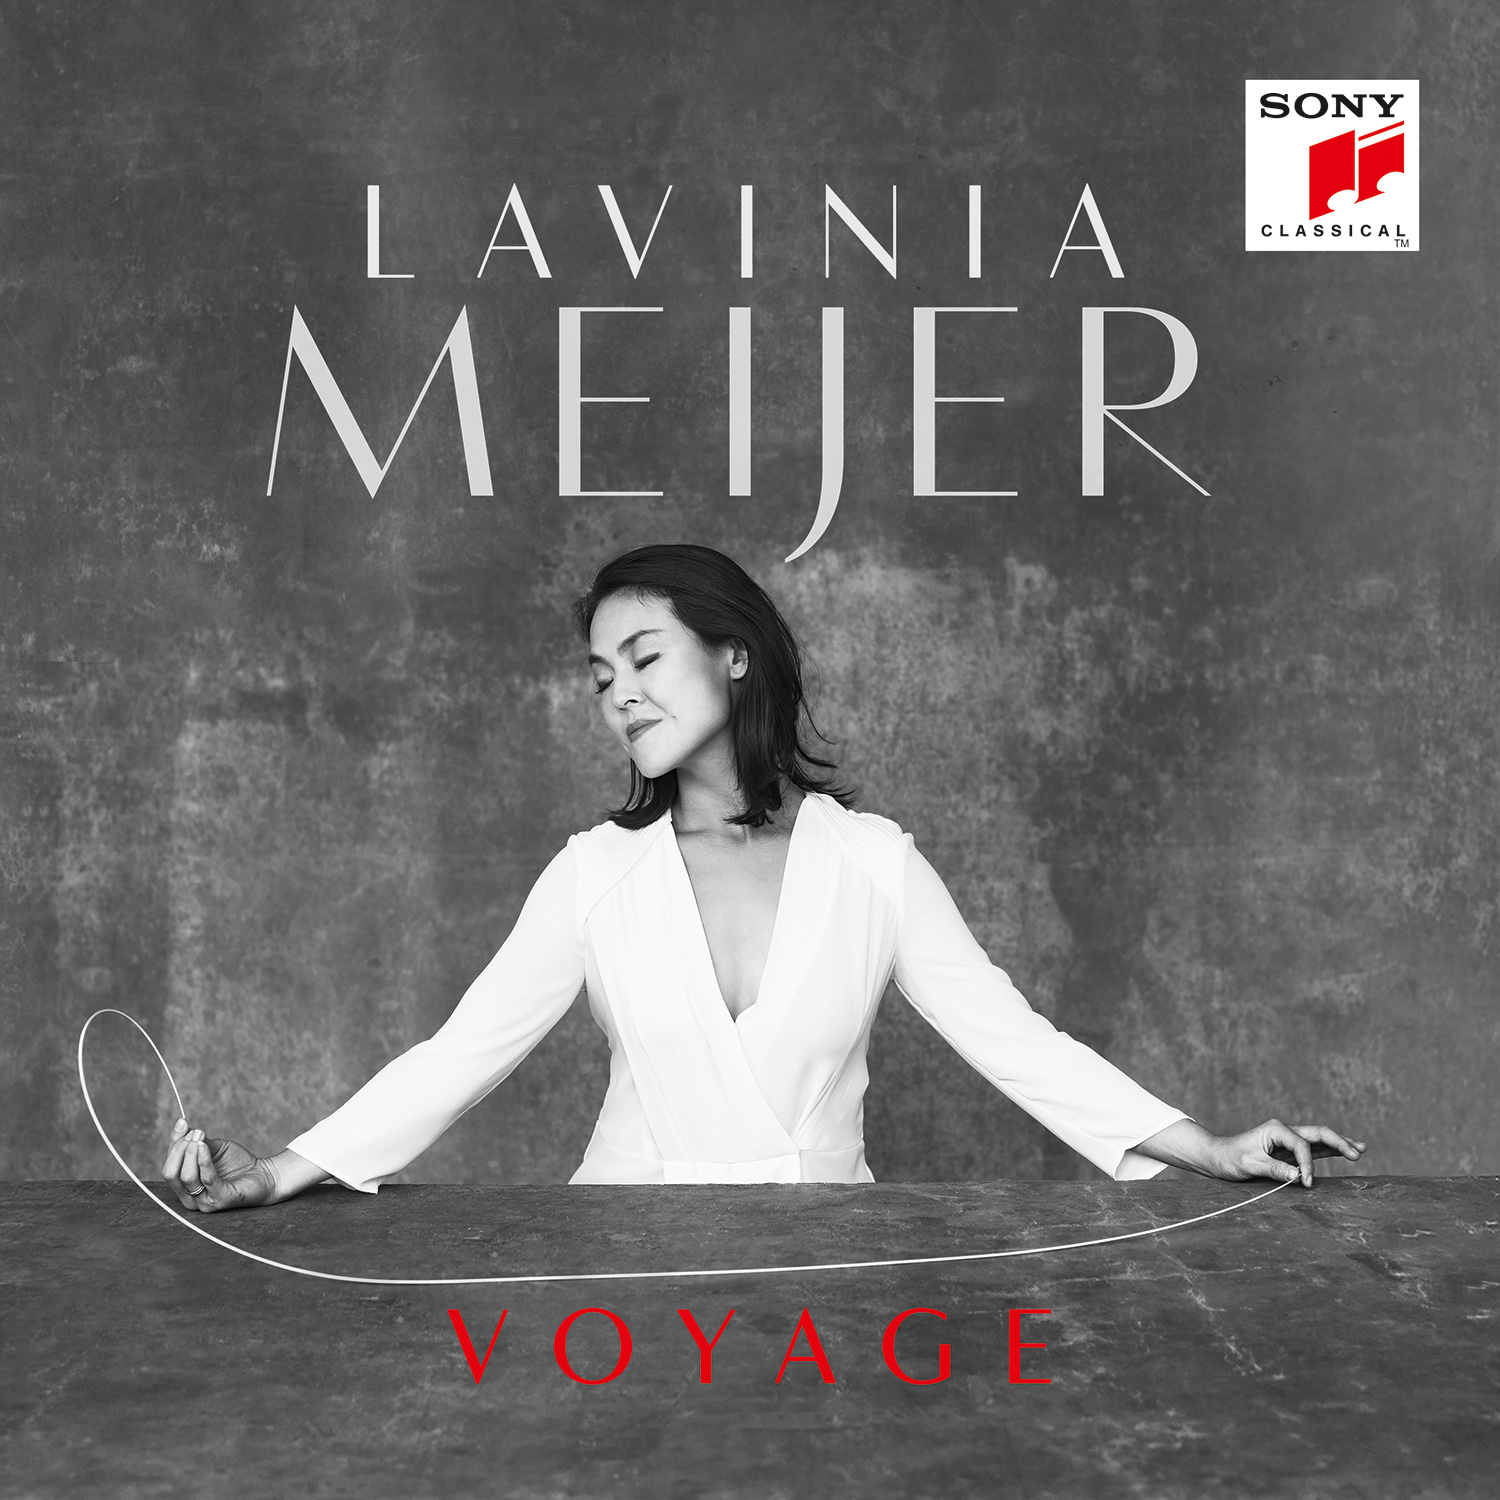 Voyage CD Cover